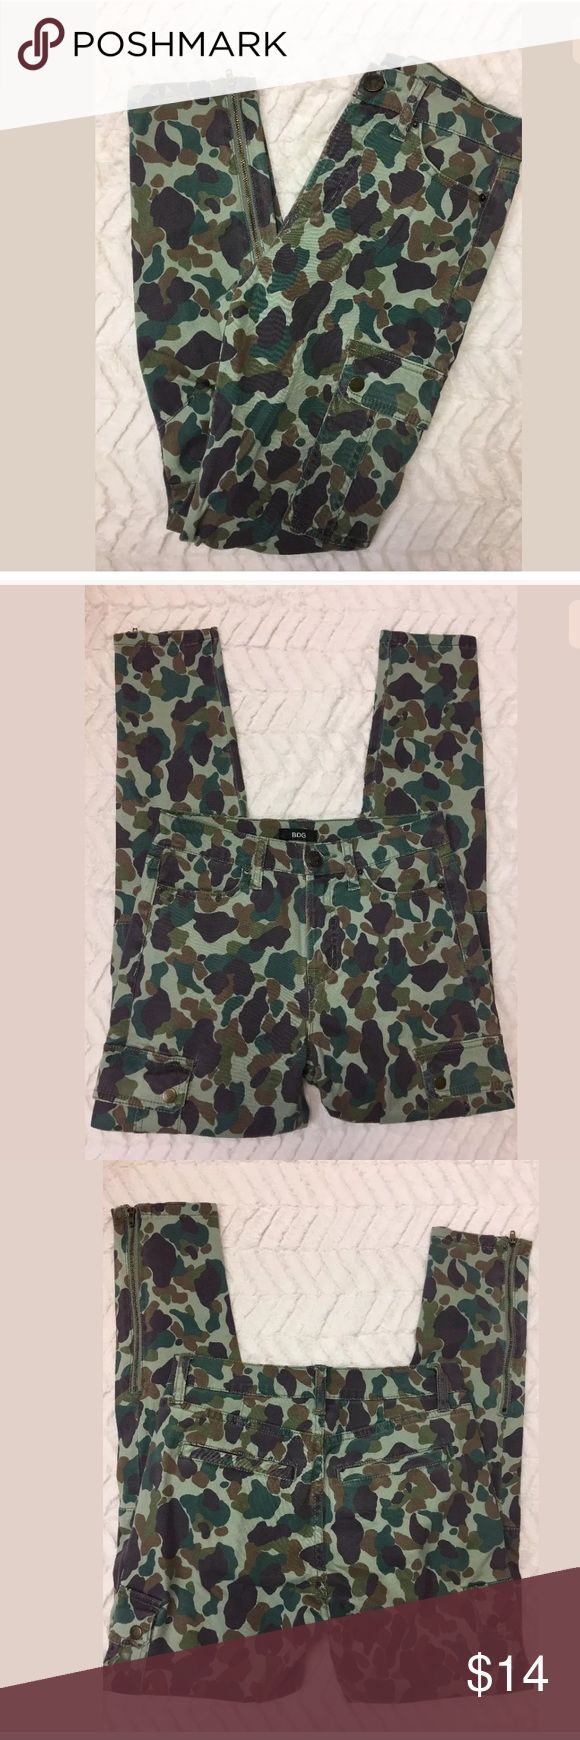 BDG Urban Outfitters Ankle Camo Jeans Pants Skinny BDG Urban Outfitters Ankle Womens Camoflauge Camo Jeans Pants Skinny Sz 25  Jeans are in excellent MINT condition with no flaws! BDG Pants Skinny